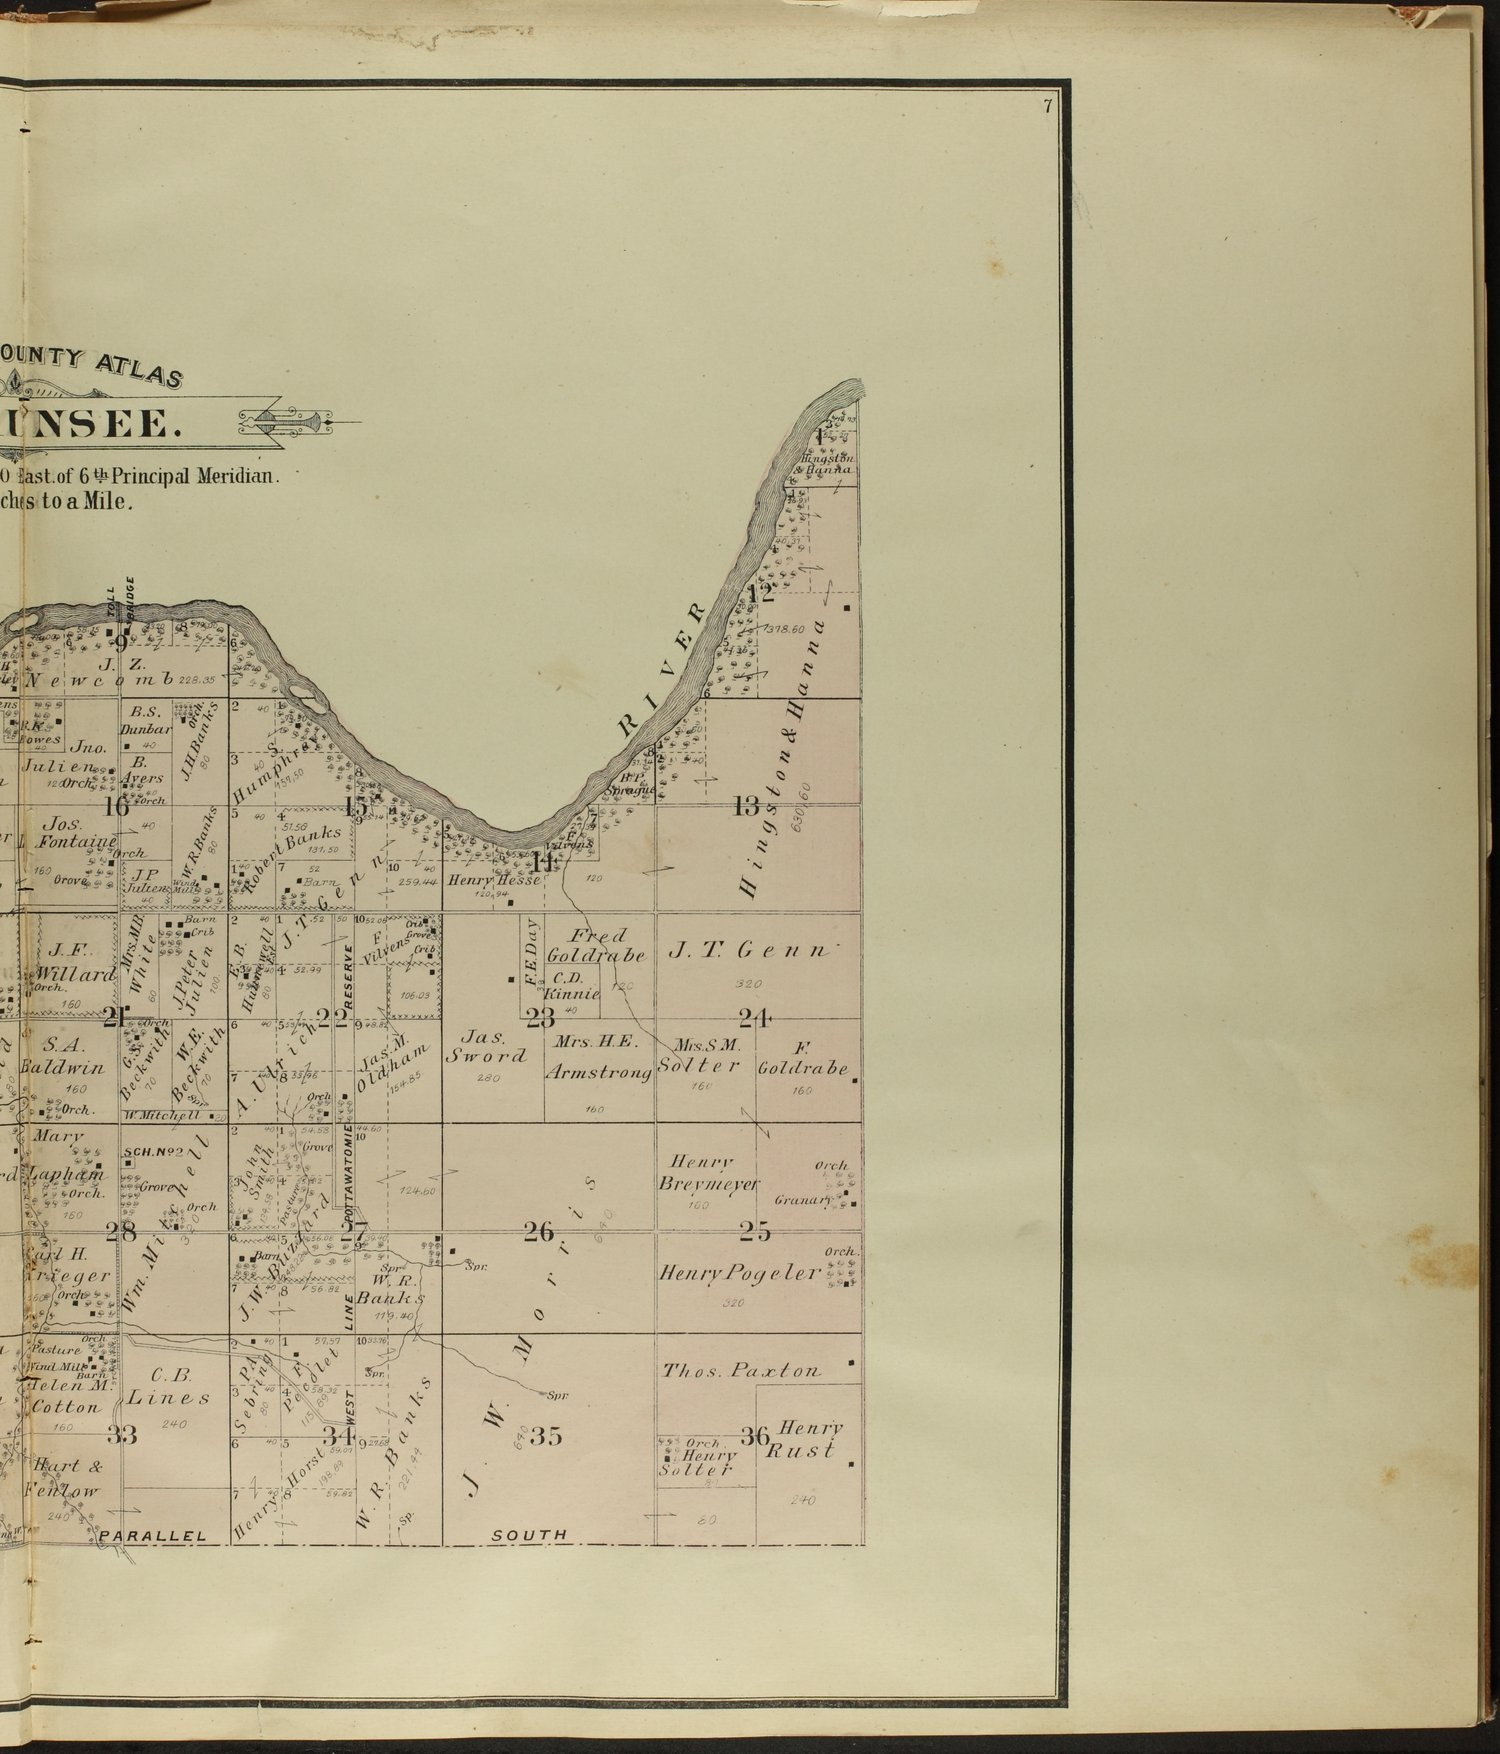 Atlas of Wabaunsee County, Kansas - 7